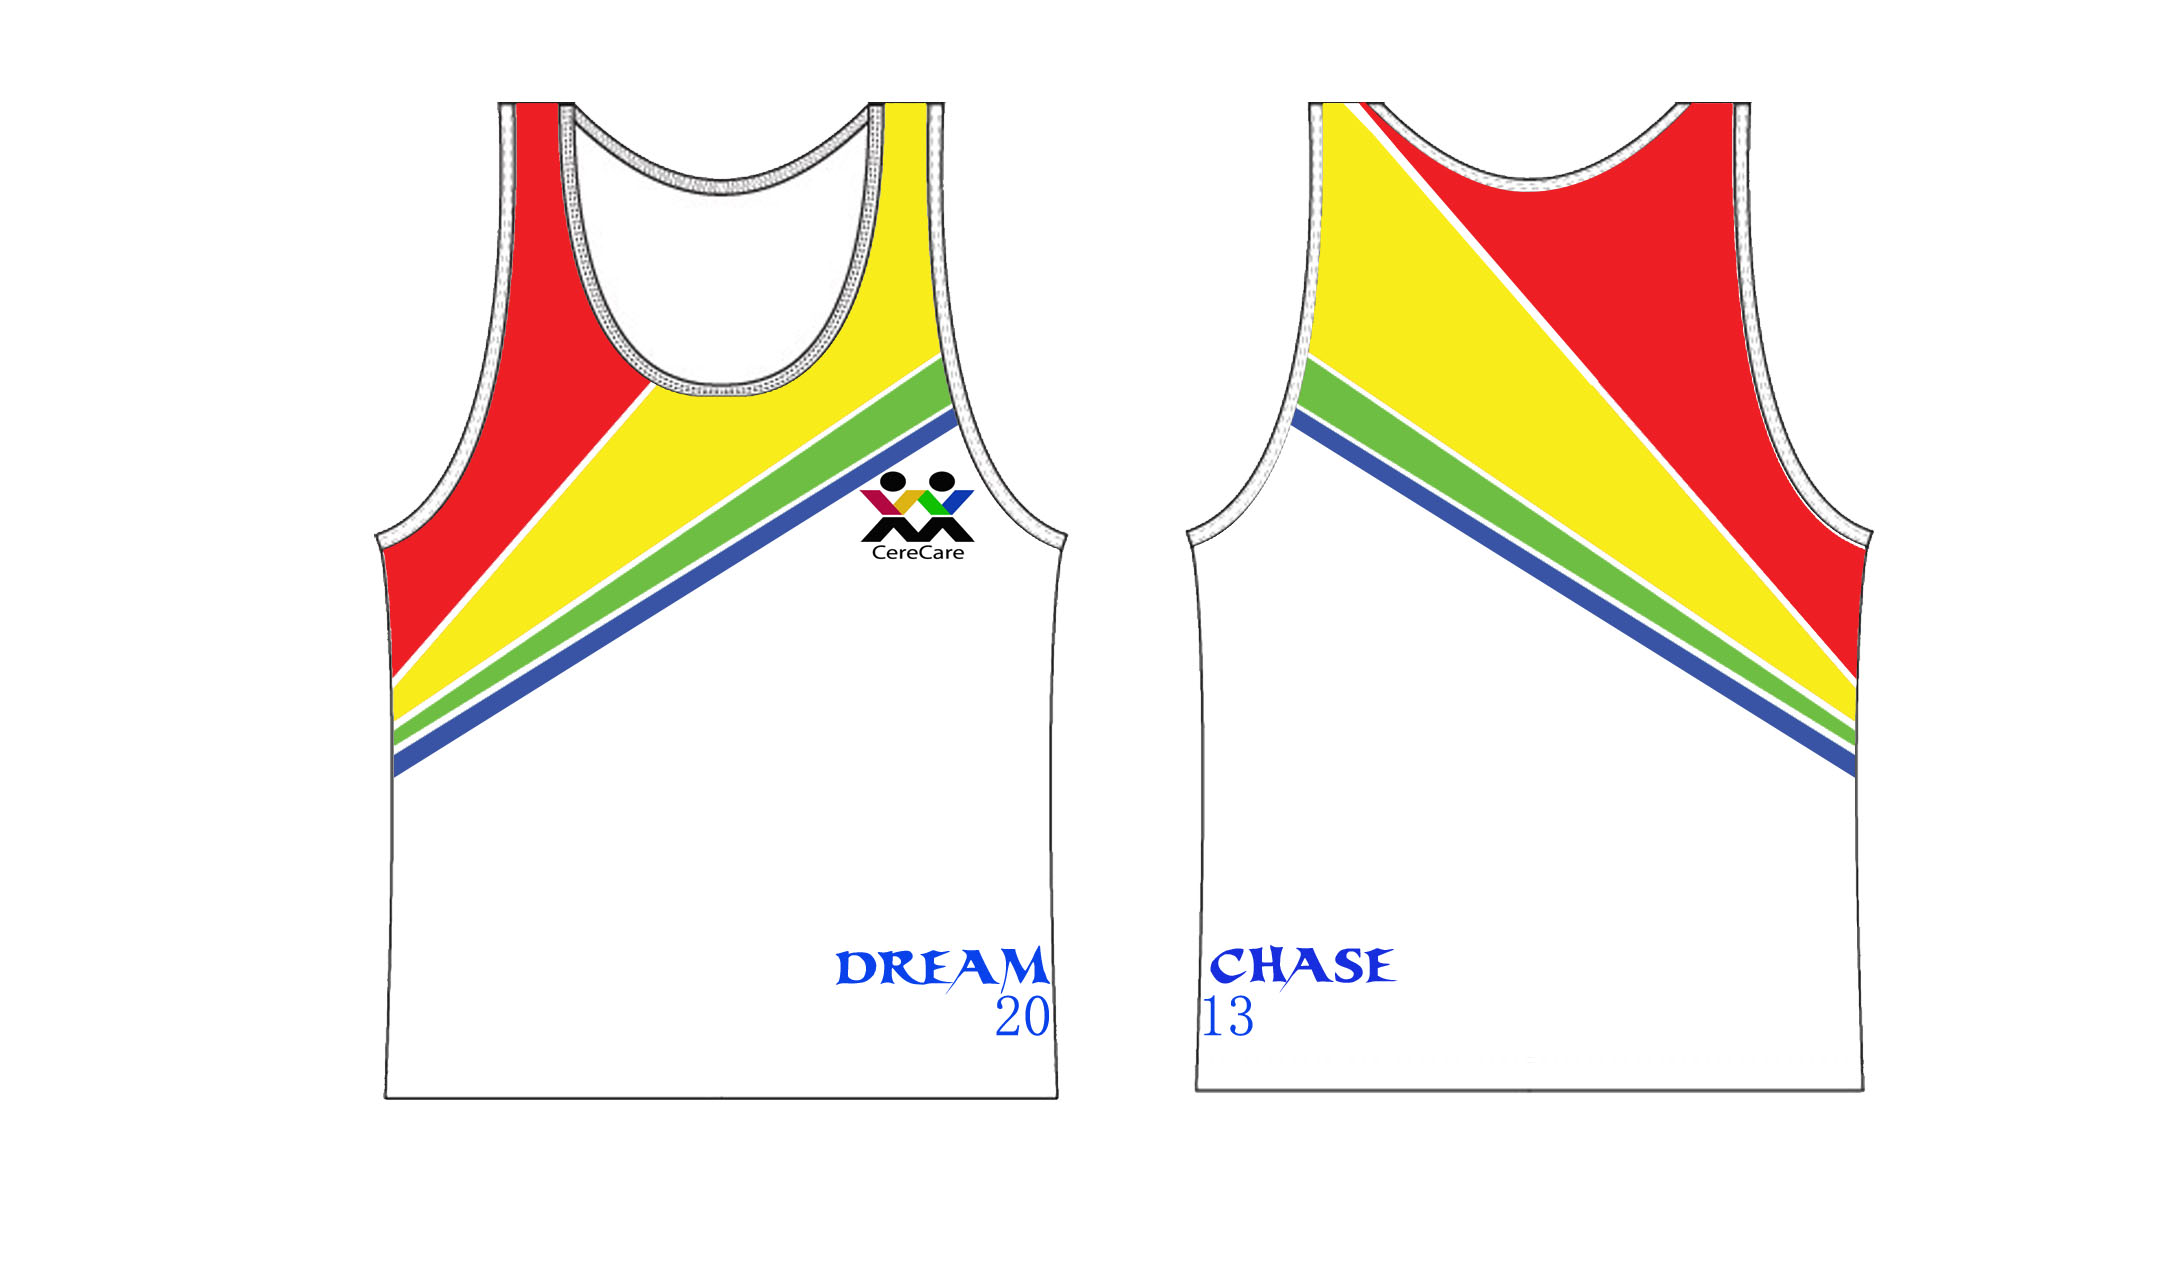 dream-chase-2013-singlet-design